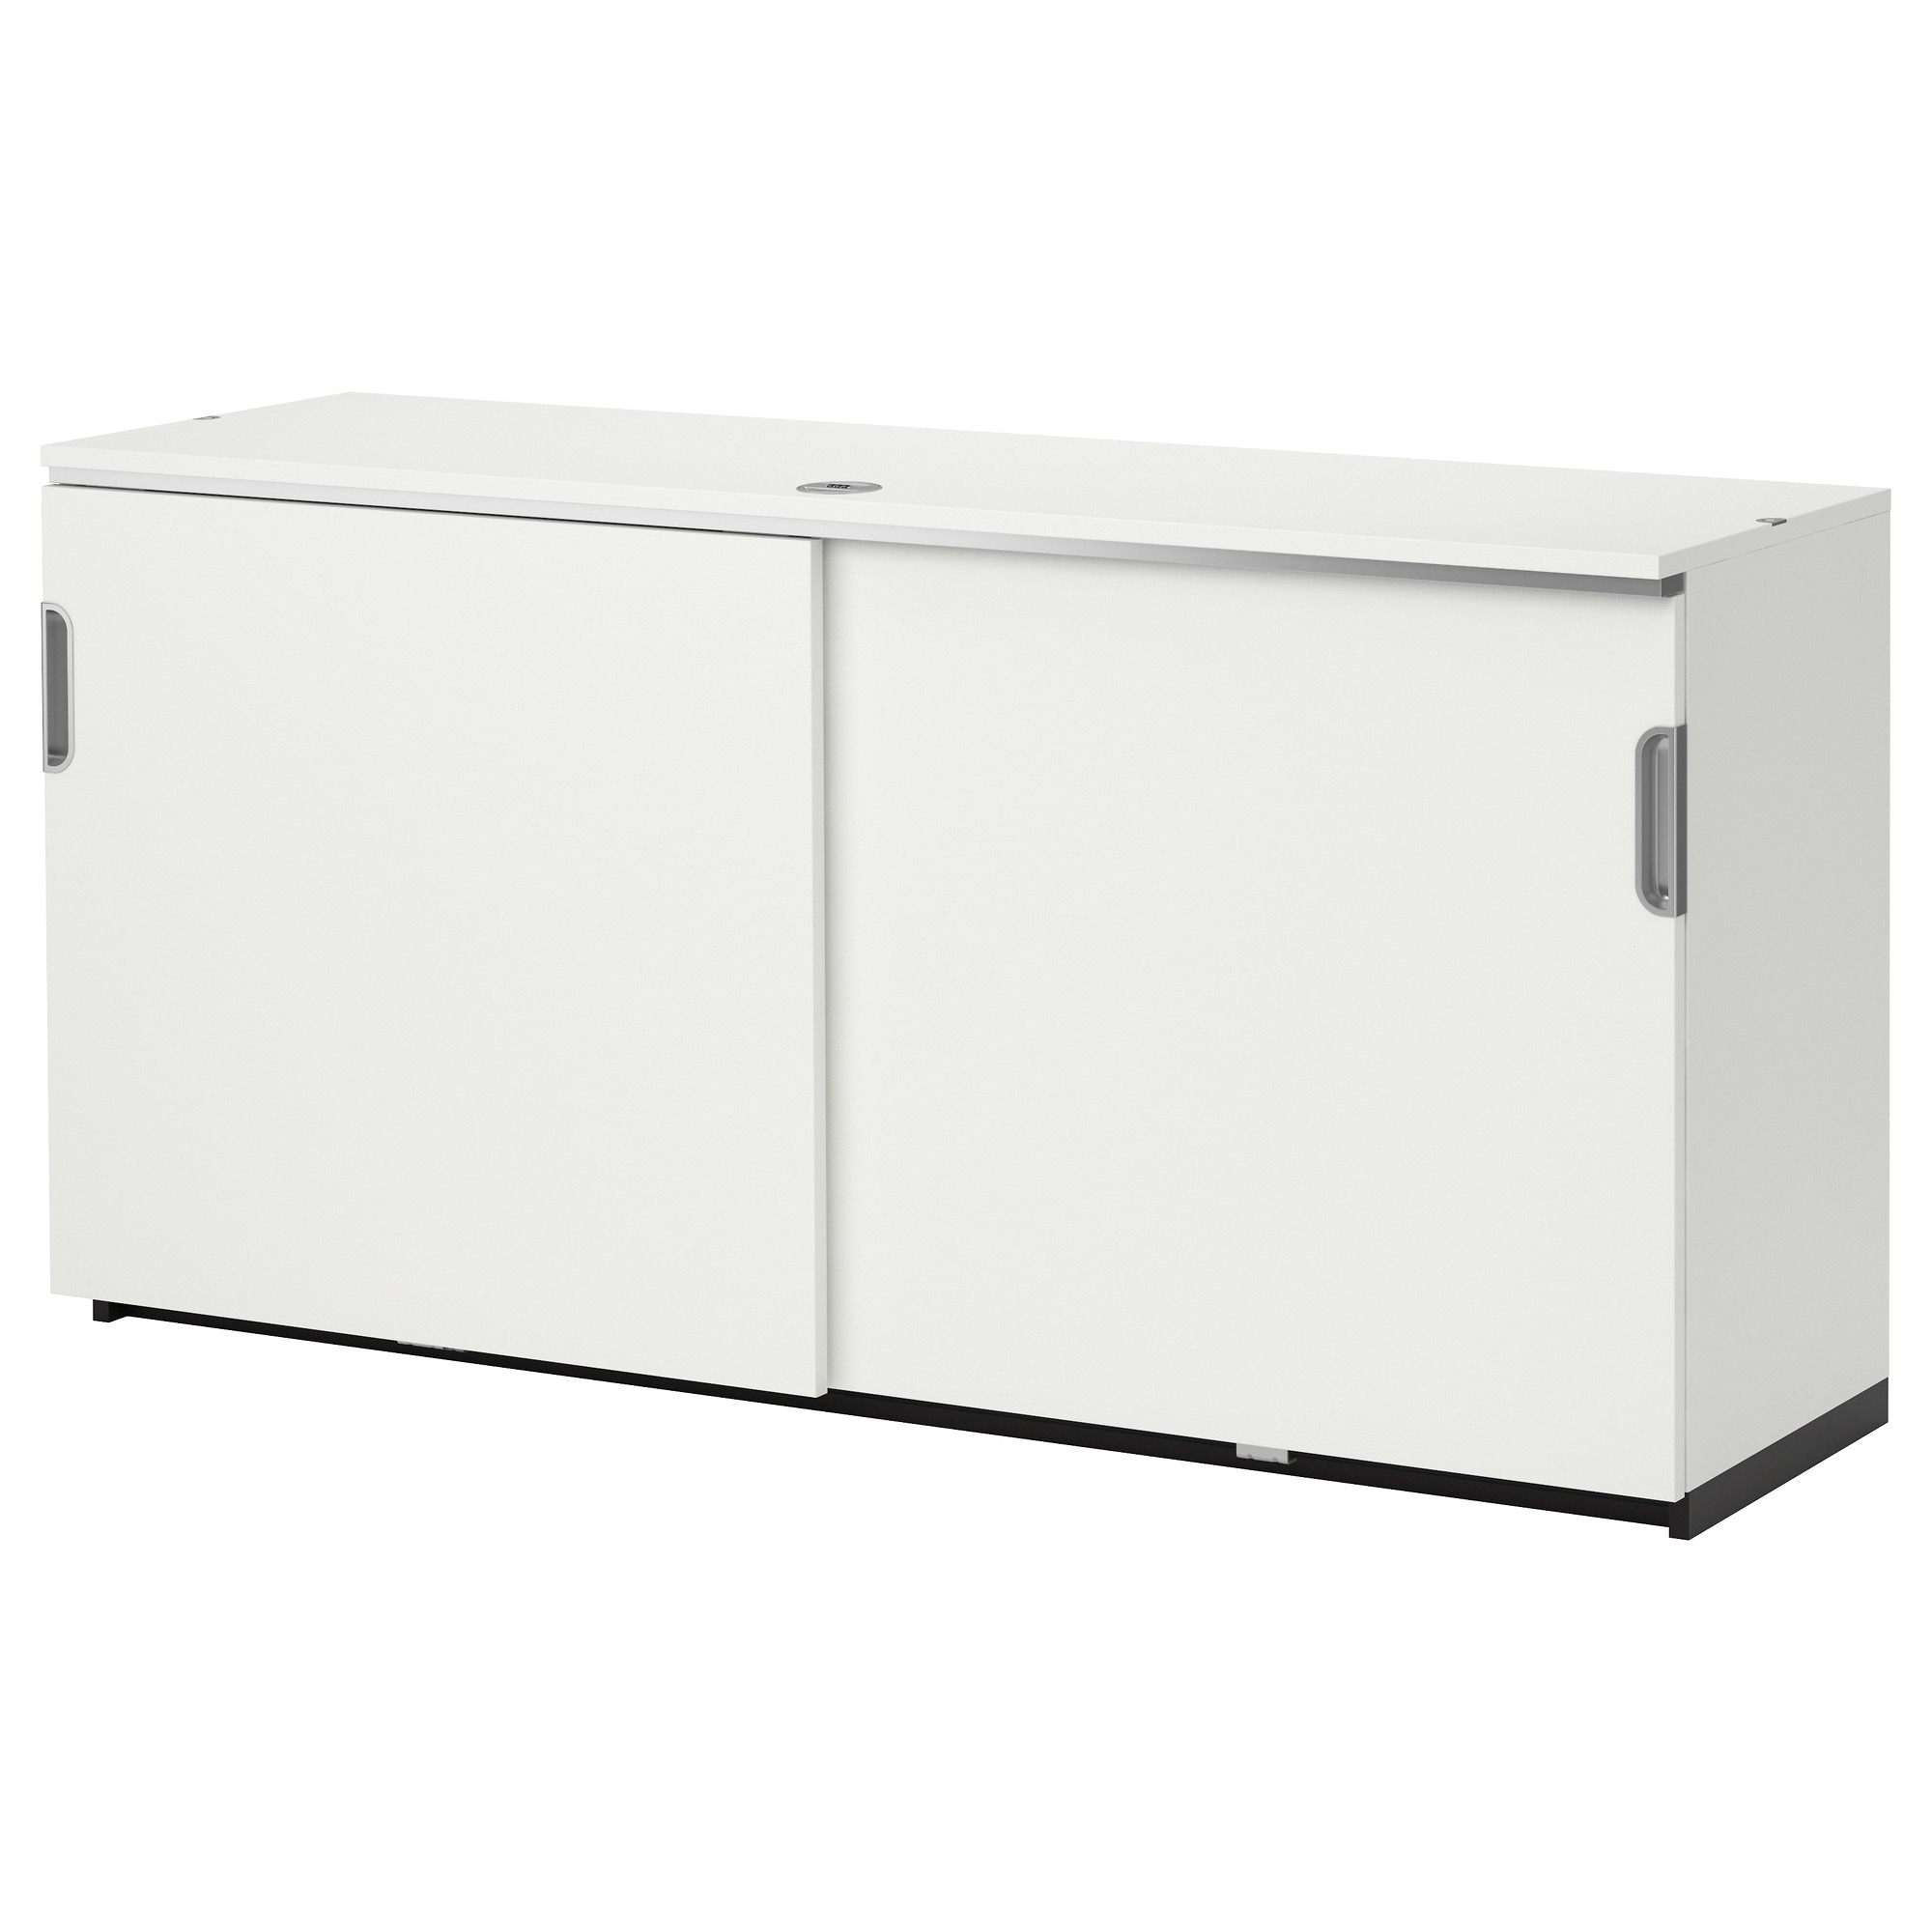 Office Metal Cabinets Filing Cabinets Filing Cabinets For Home Office Ikea